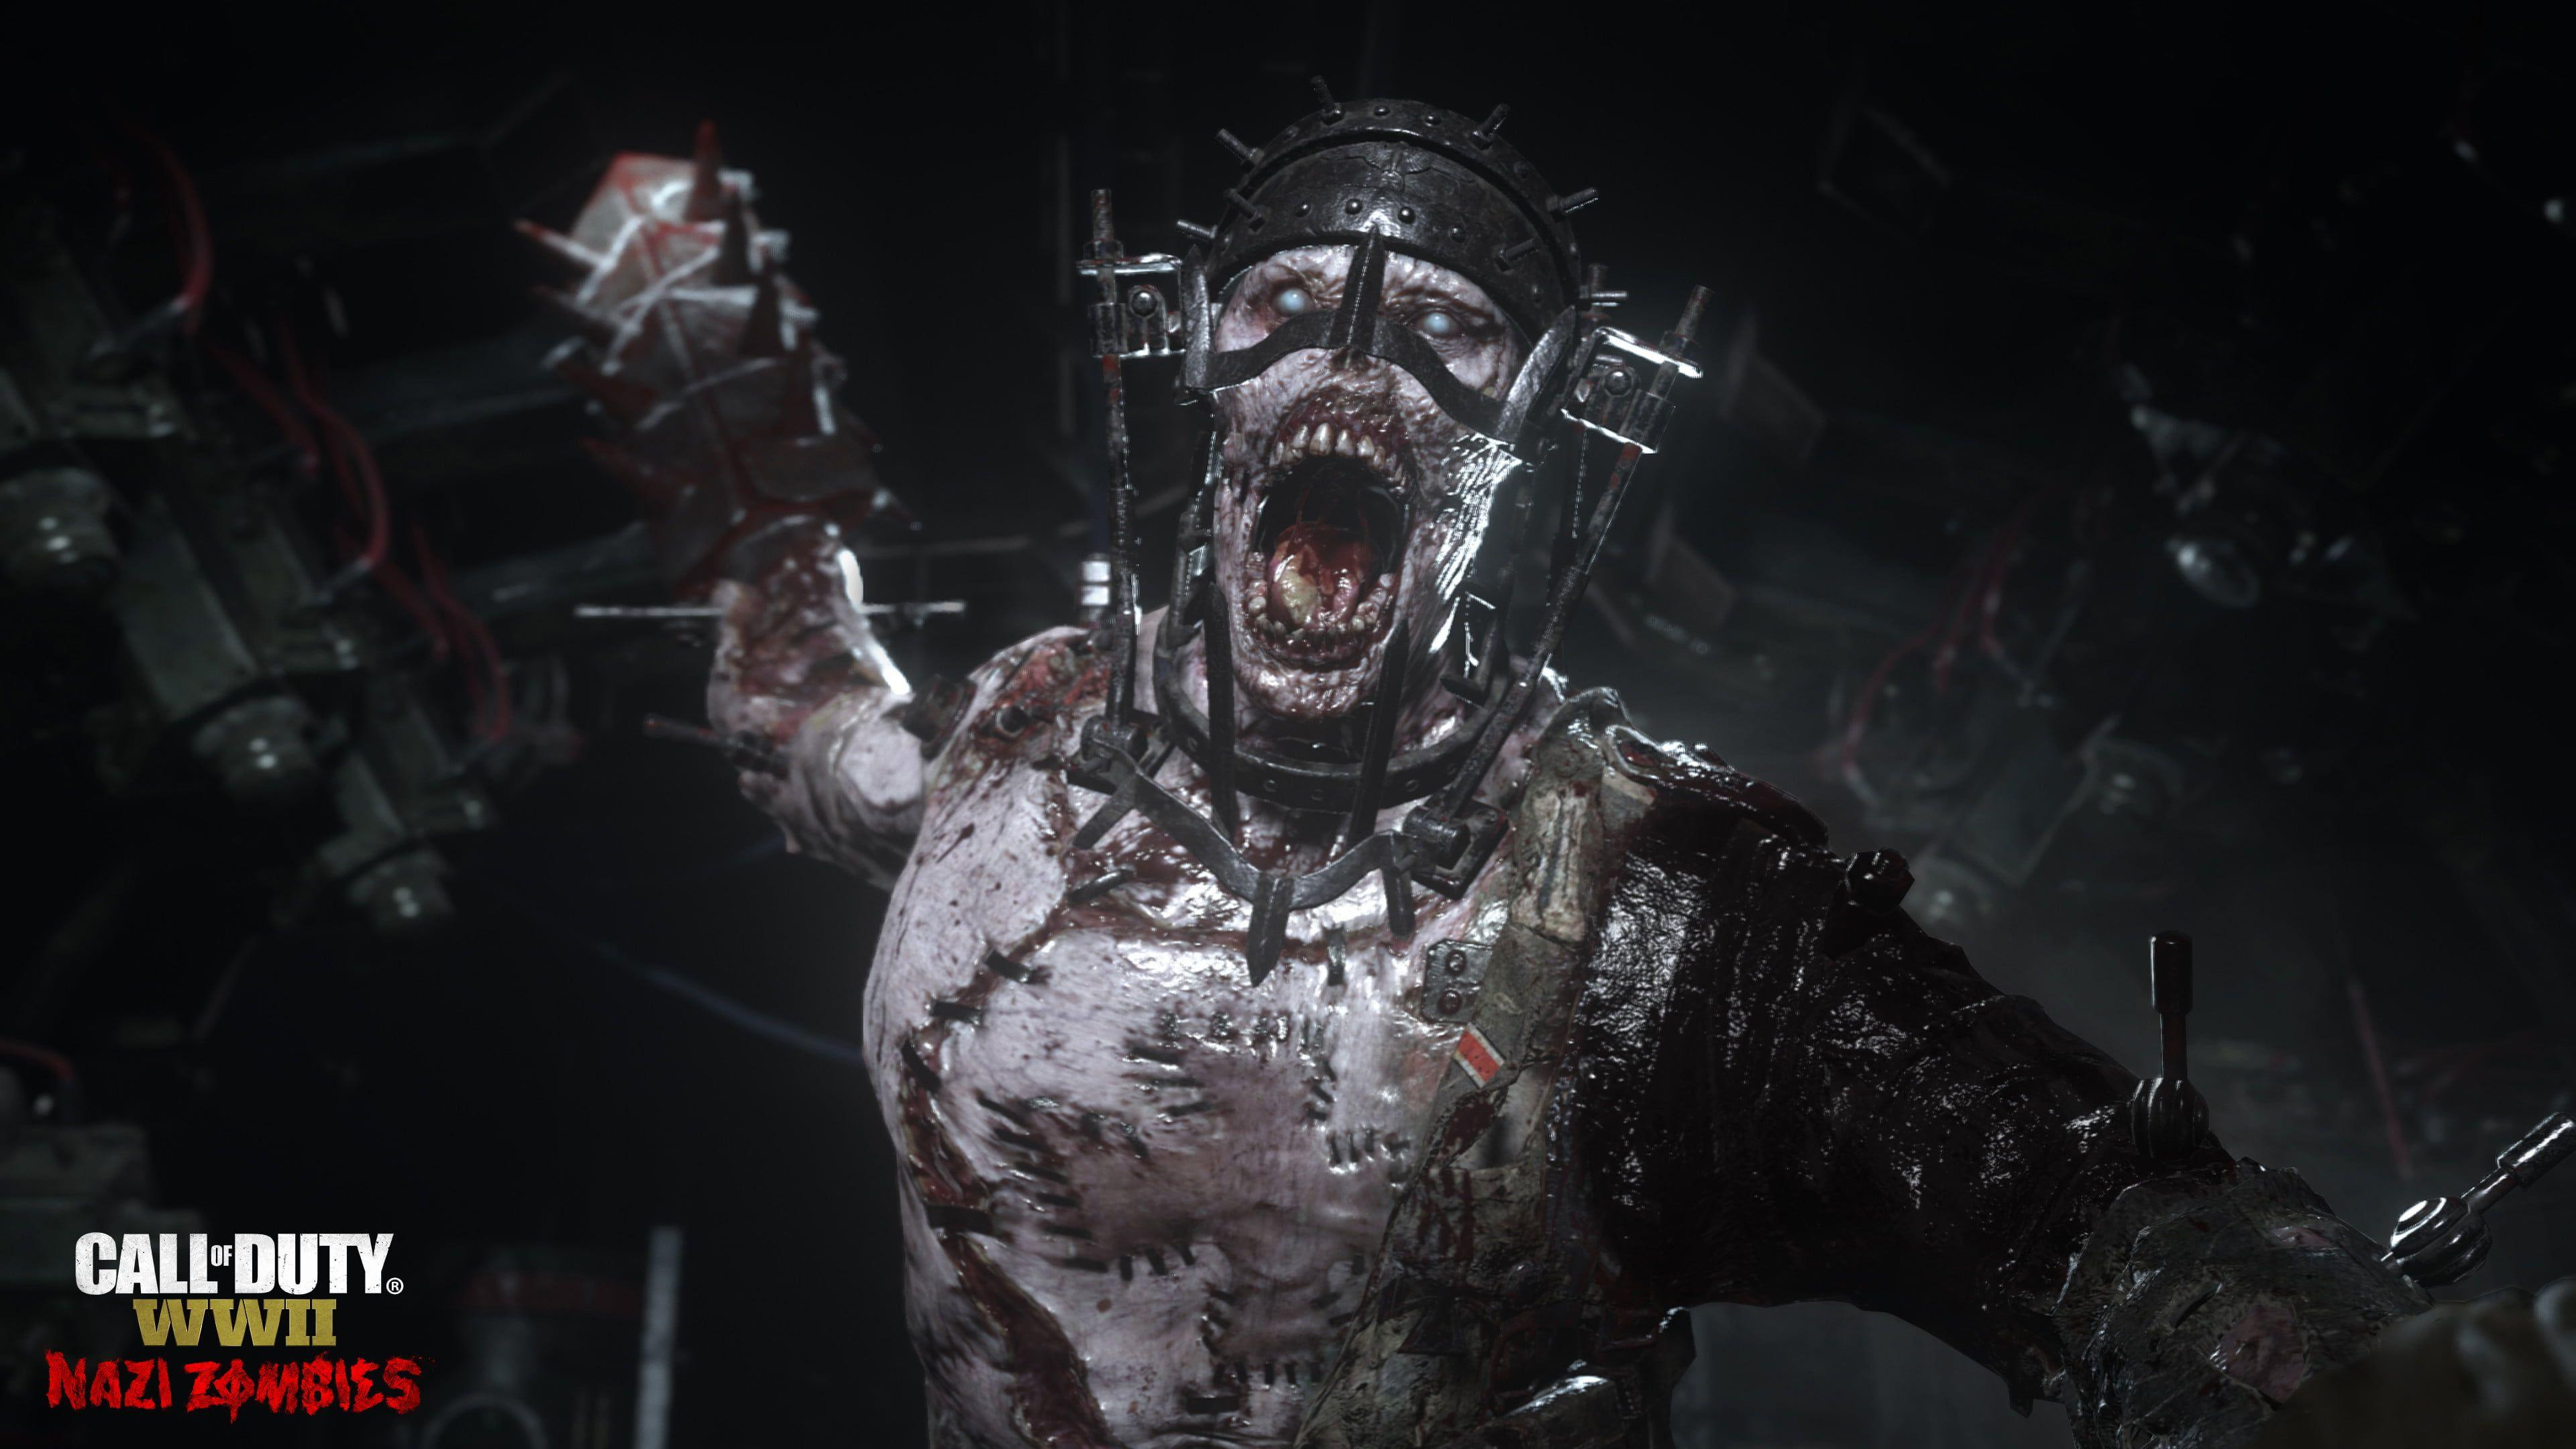 Call Of Duty WWII Nazi Zombies   Games HD 4k Wallpapers